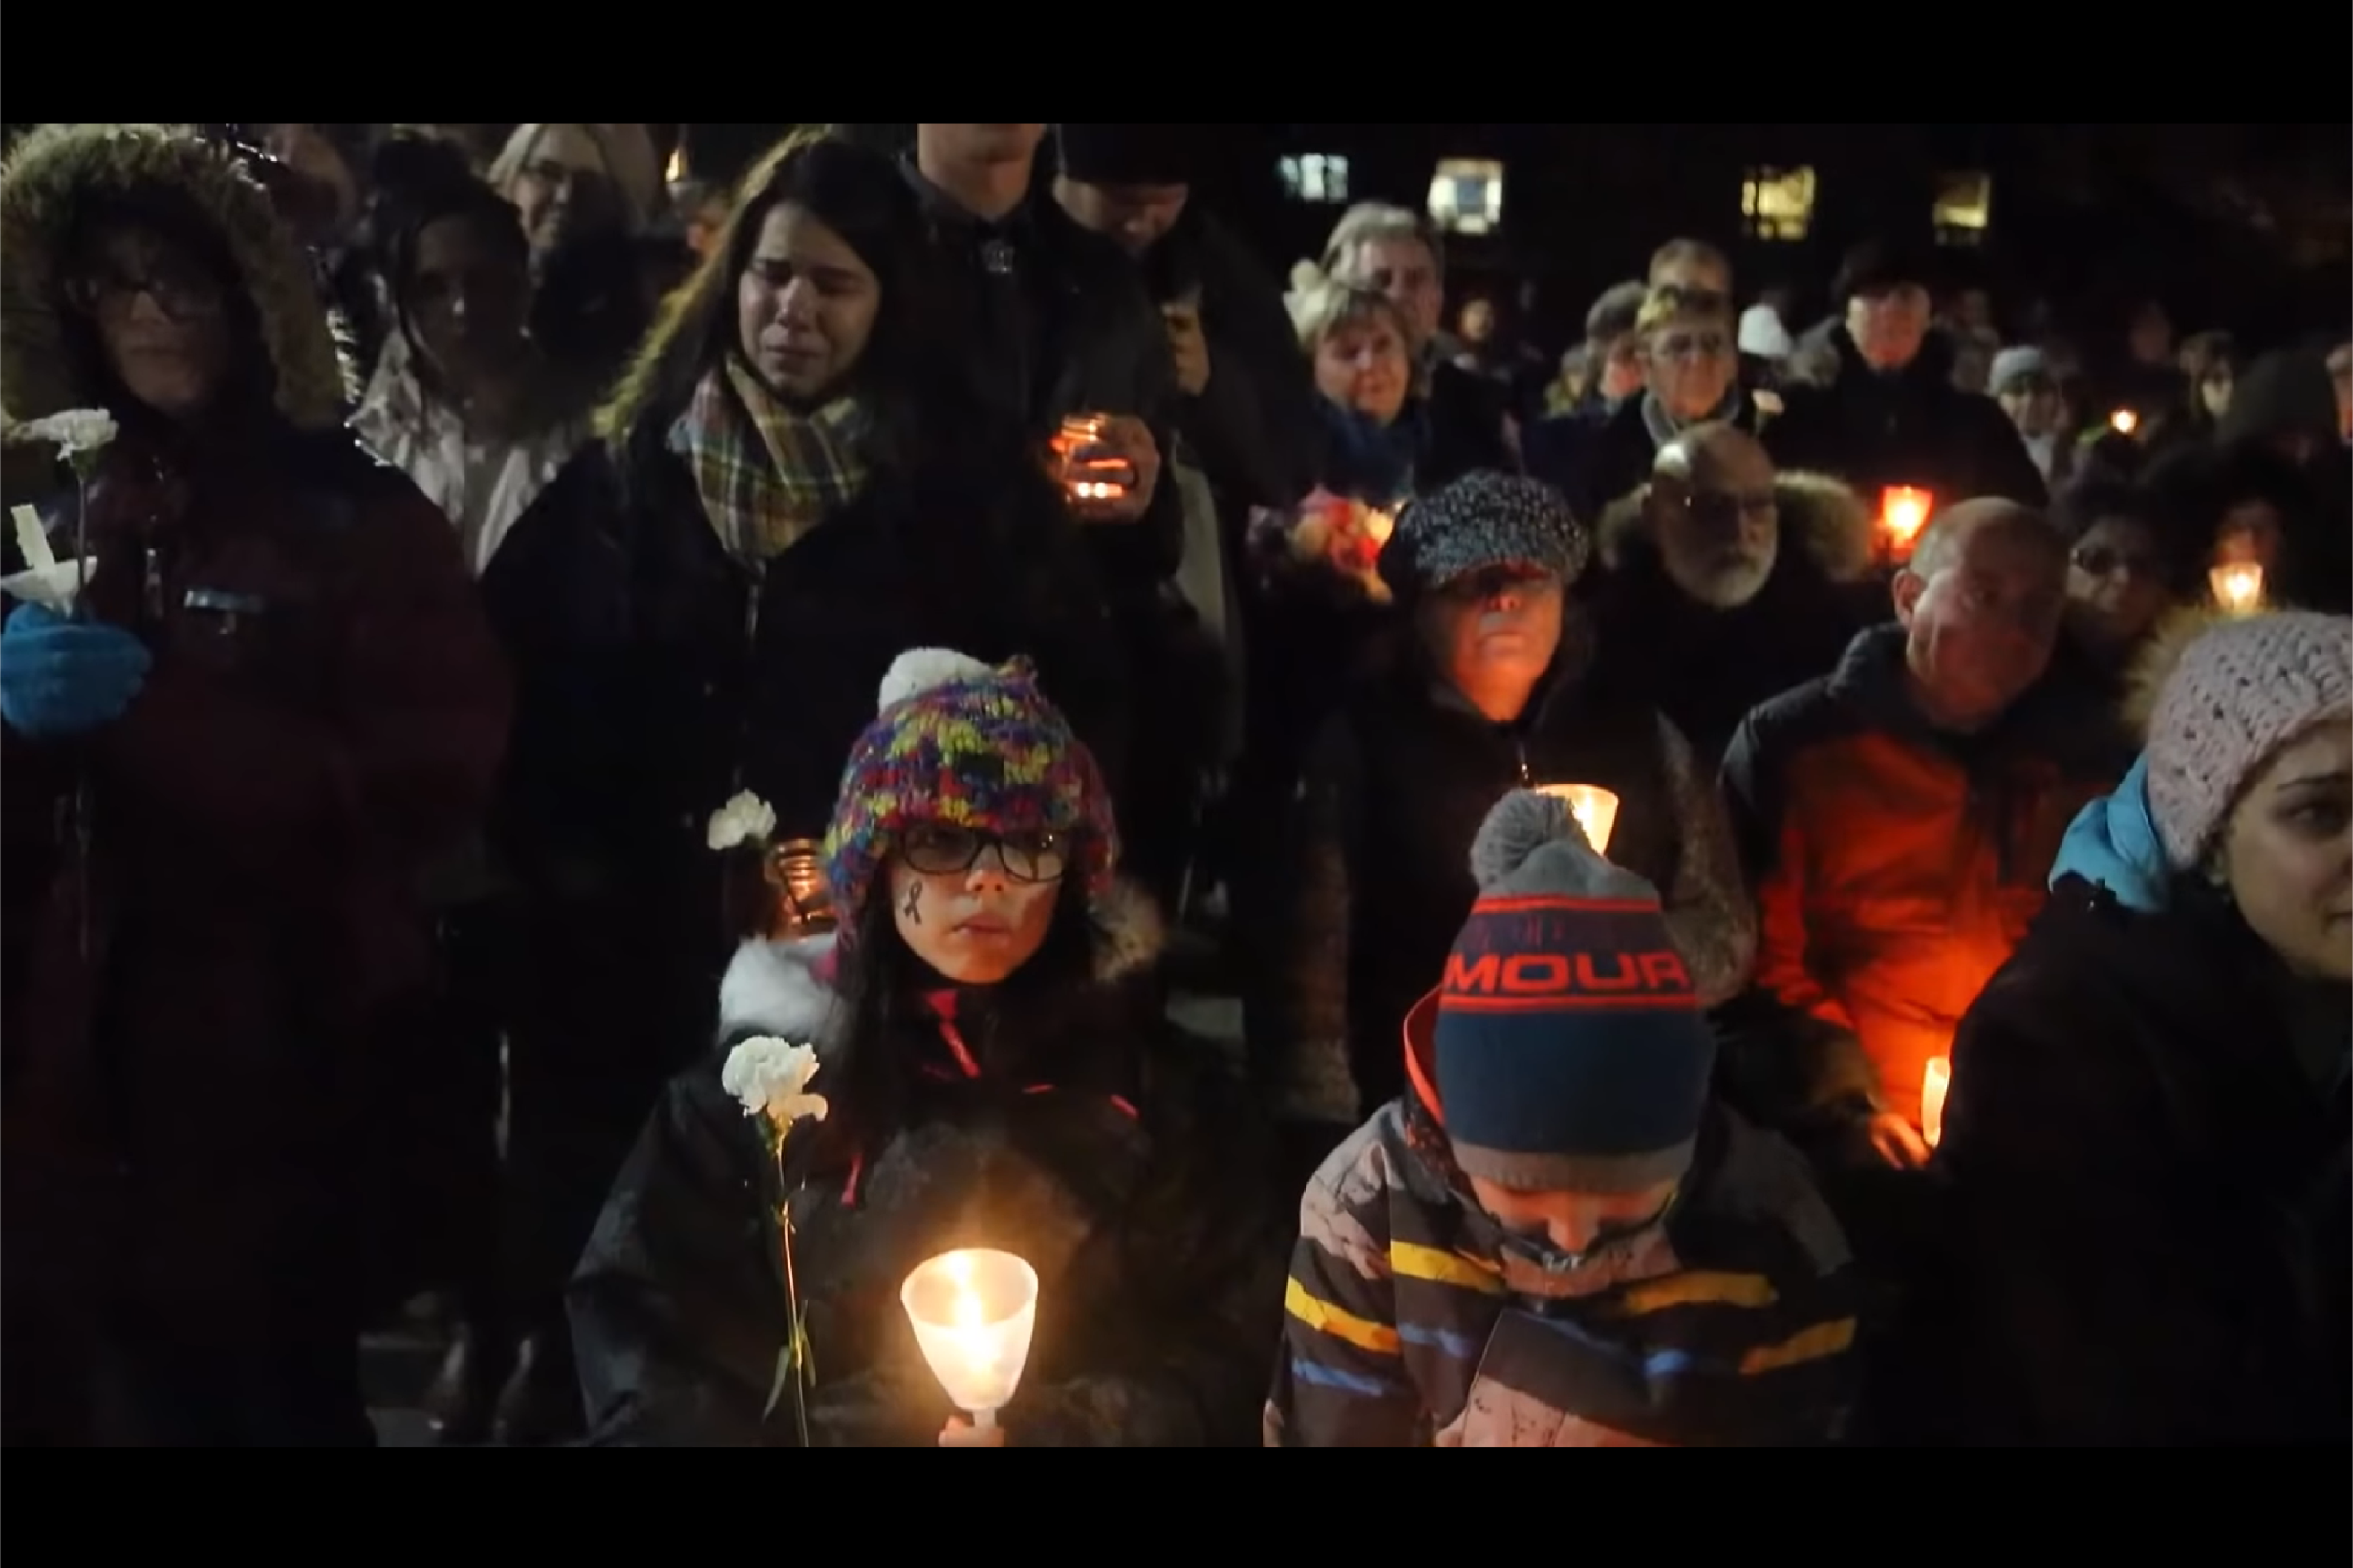 EN - The Citizen -  Vigil in Alexandria for Slain Mother  | 2018 10 24